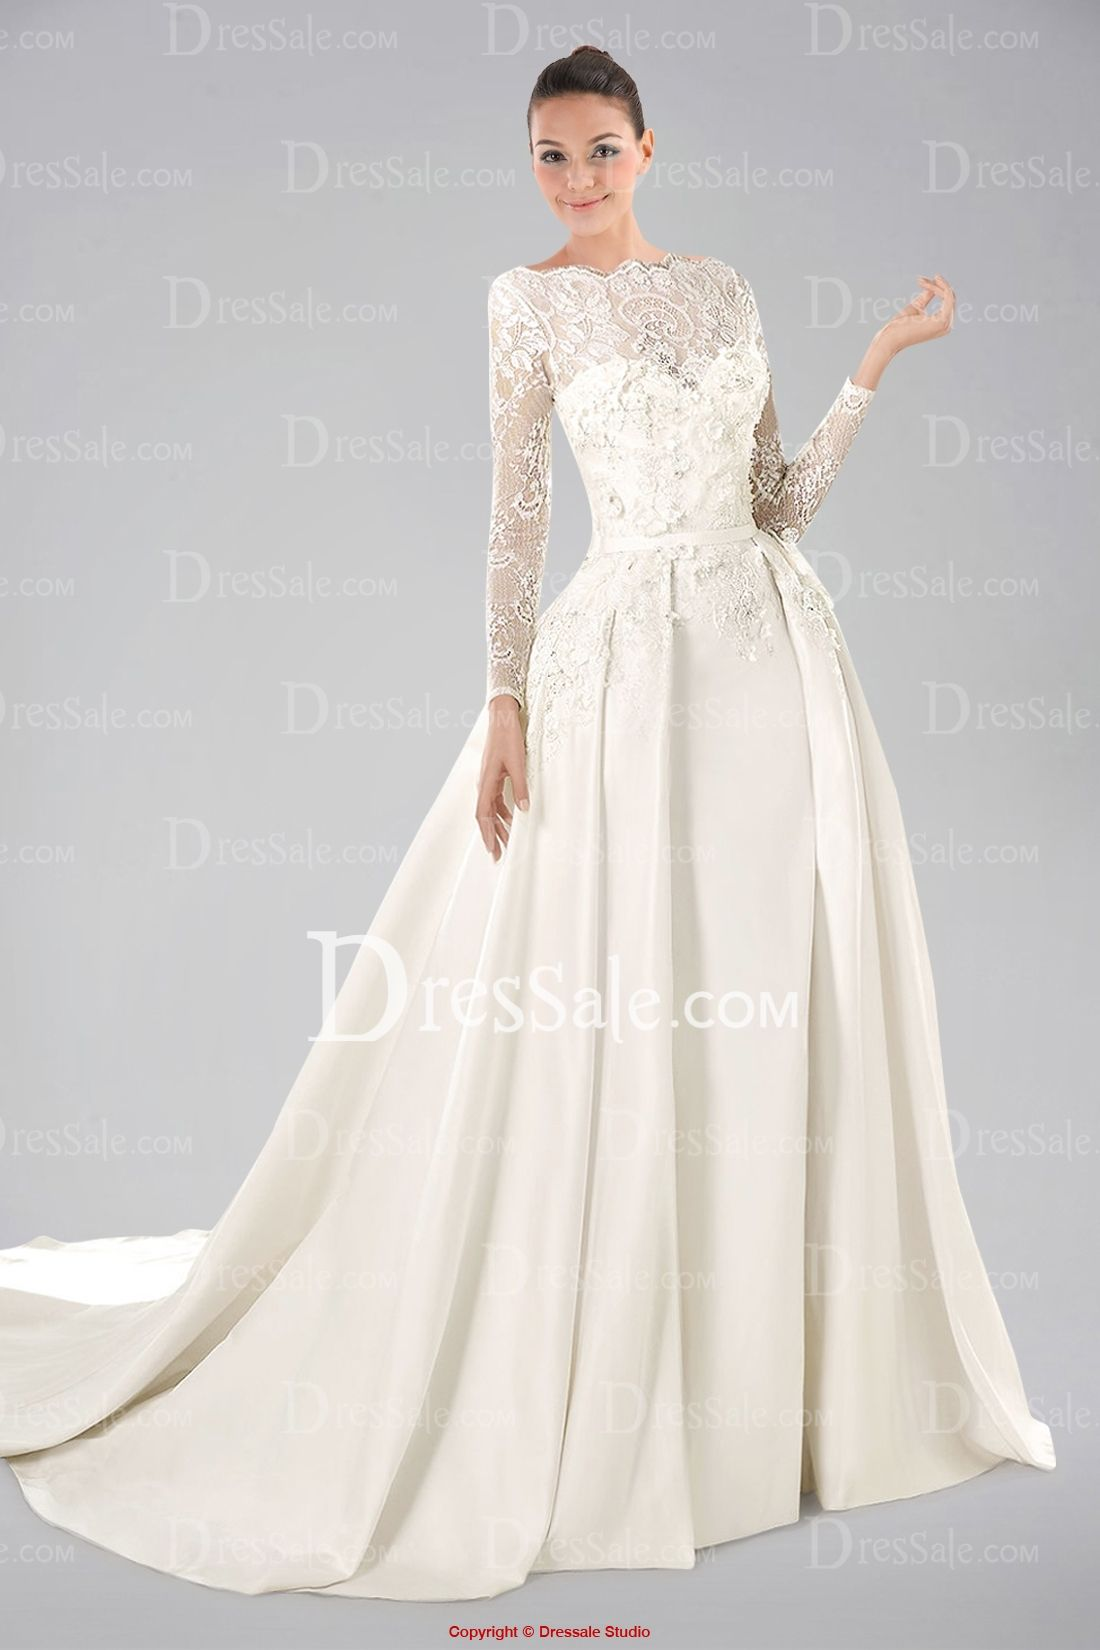 03d99e7e9ed97 Noble Long Lace Sleeve Satin Wedding Gown with Appliques and V-back - long  sleeve and embellishment